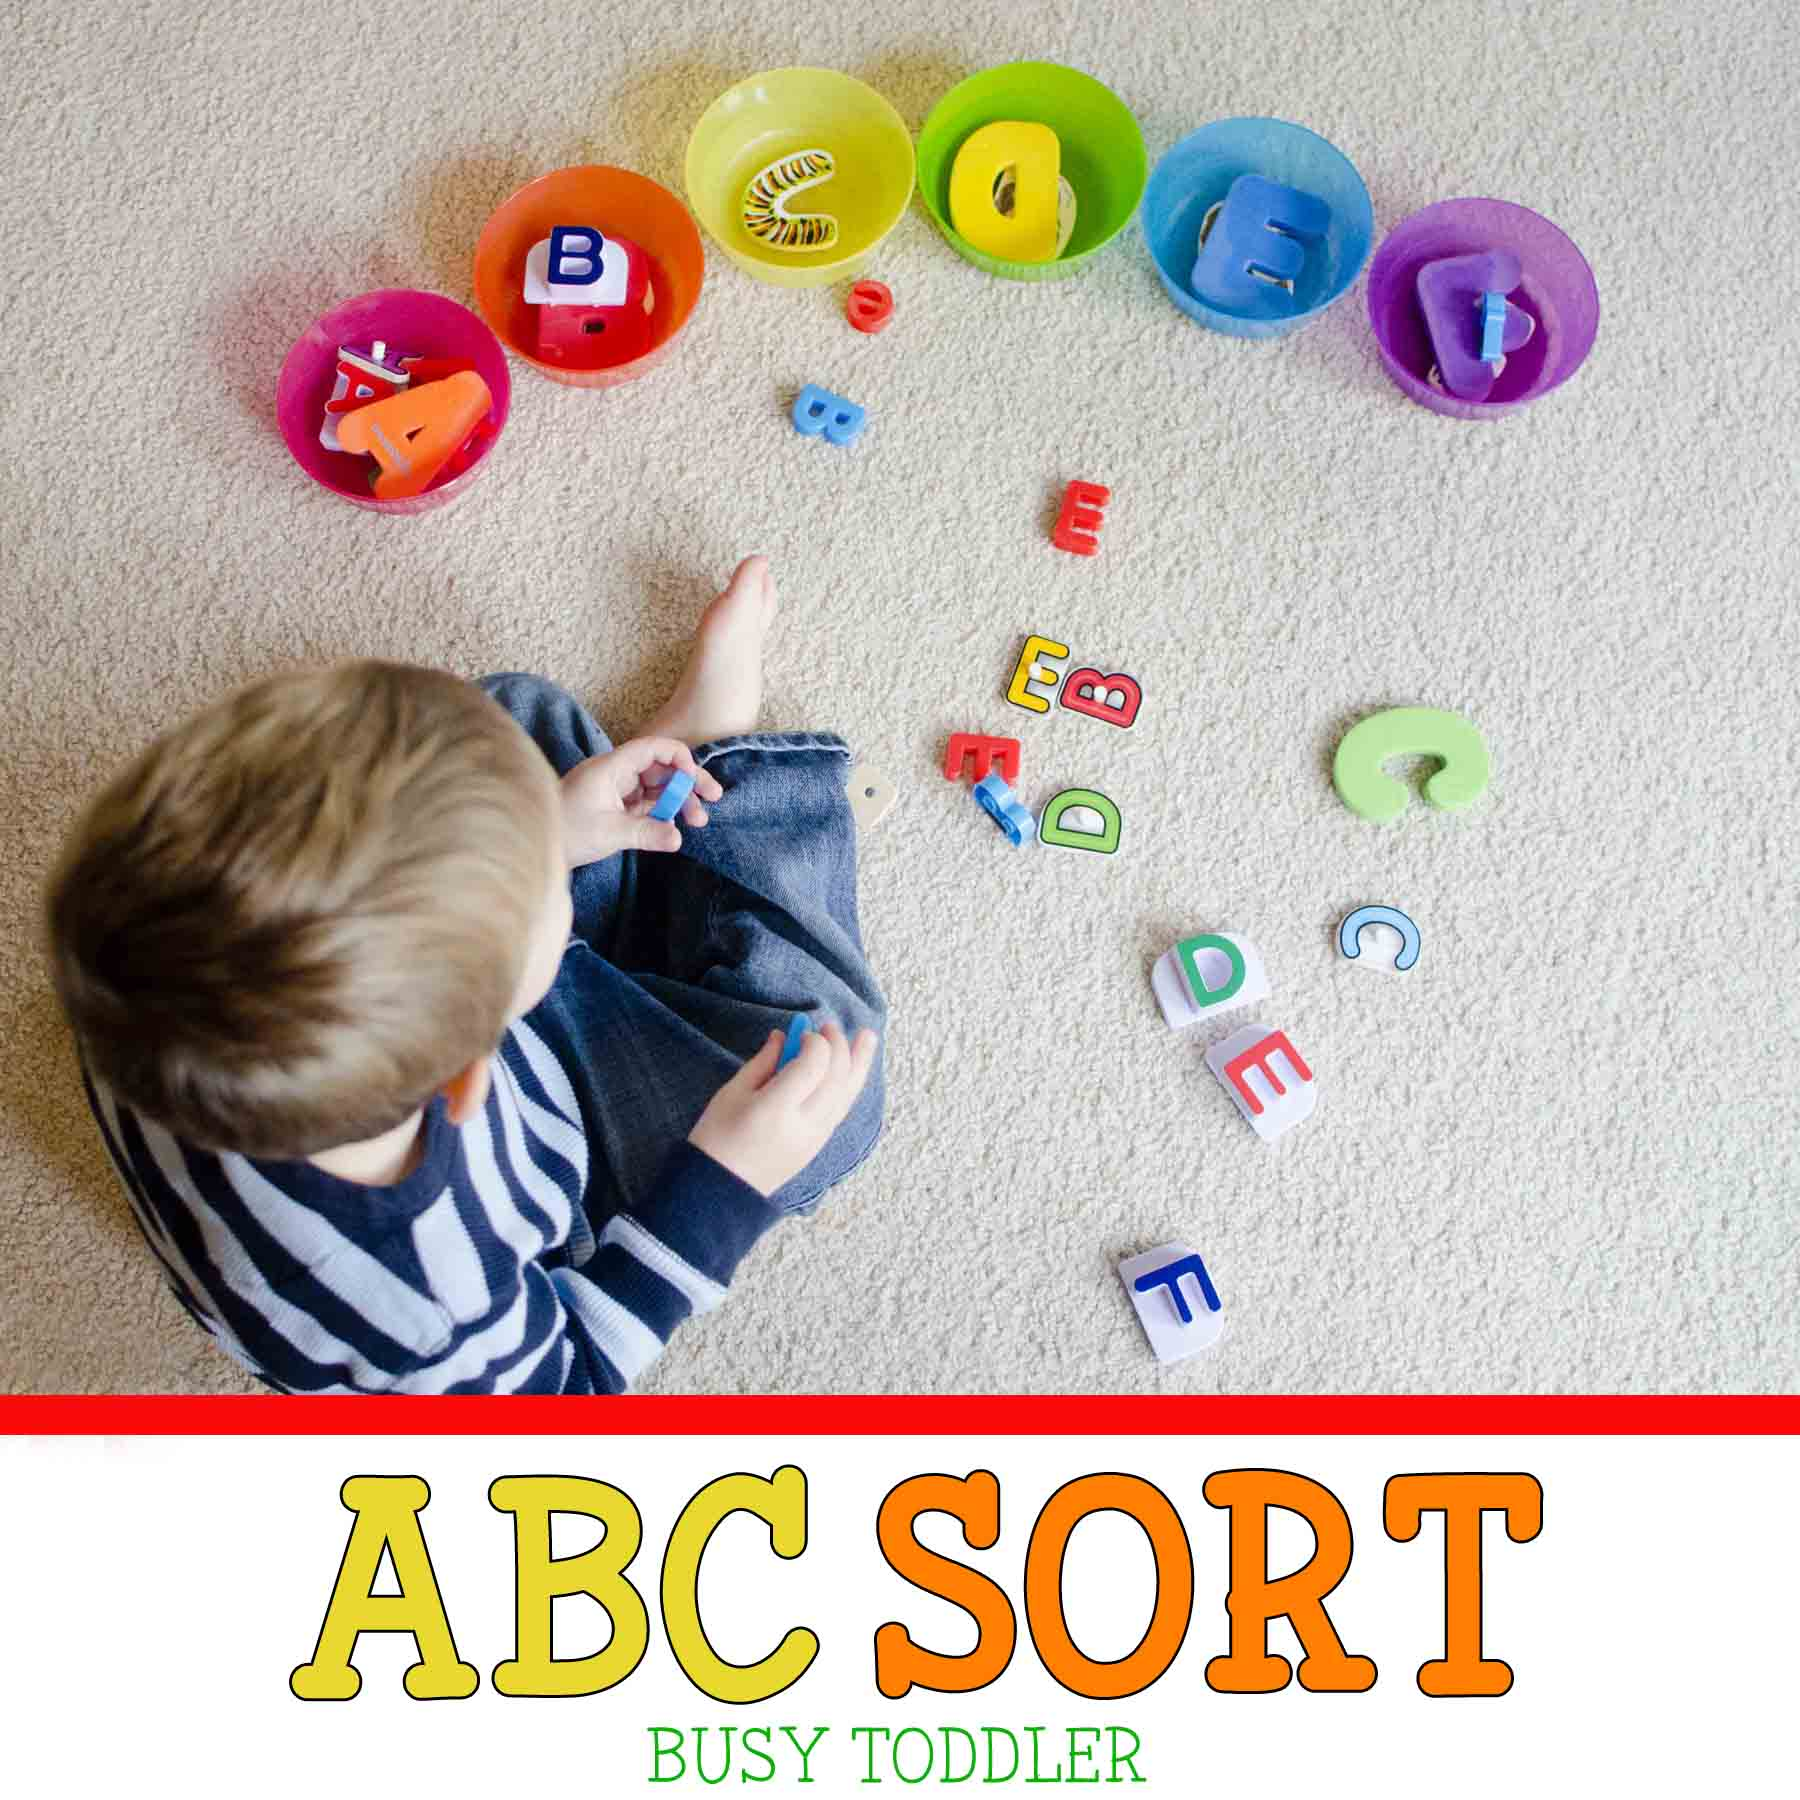 ABC Sort: Toddler Literacy Activity - Busy Toddler